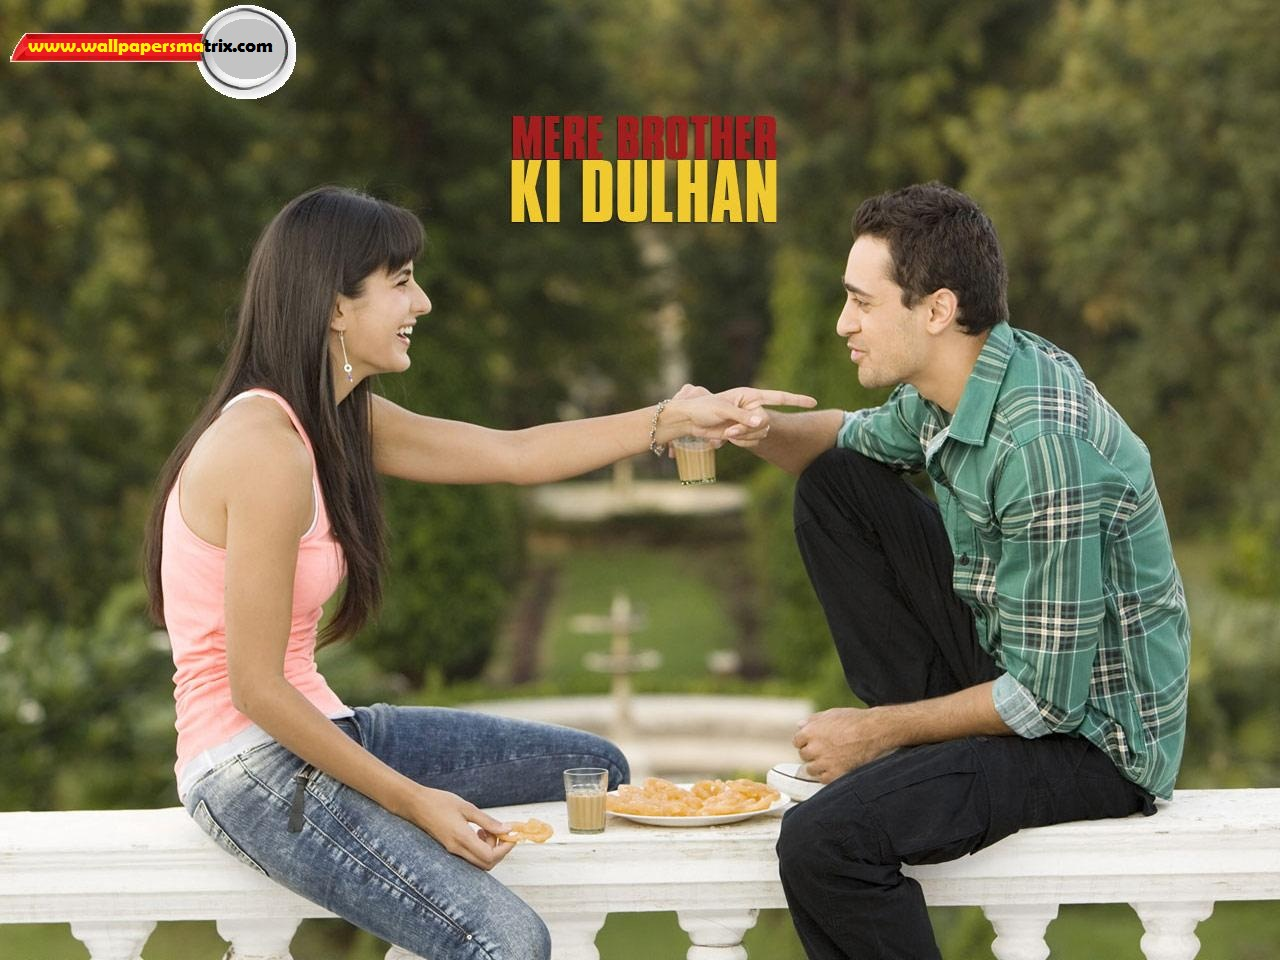 Katrina Kaif Wallpapers: Mere Brother Ki Dulhan Katrina ...